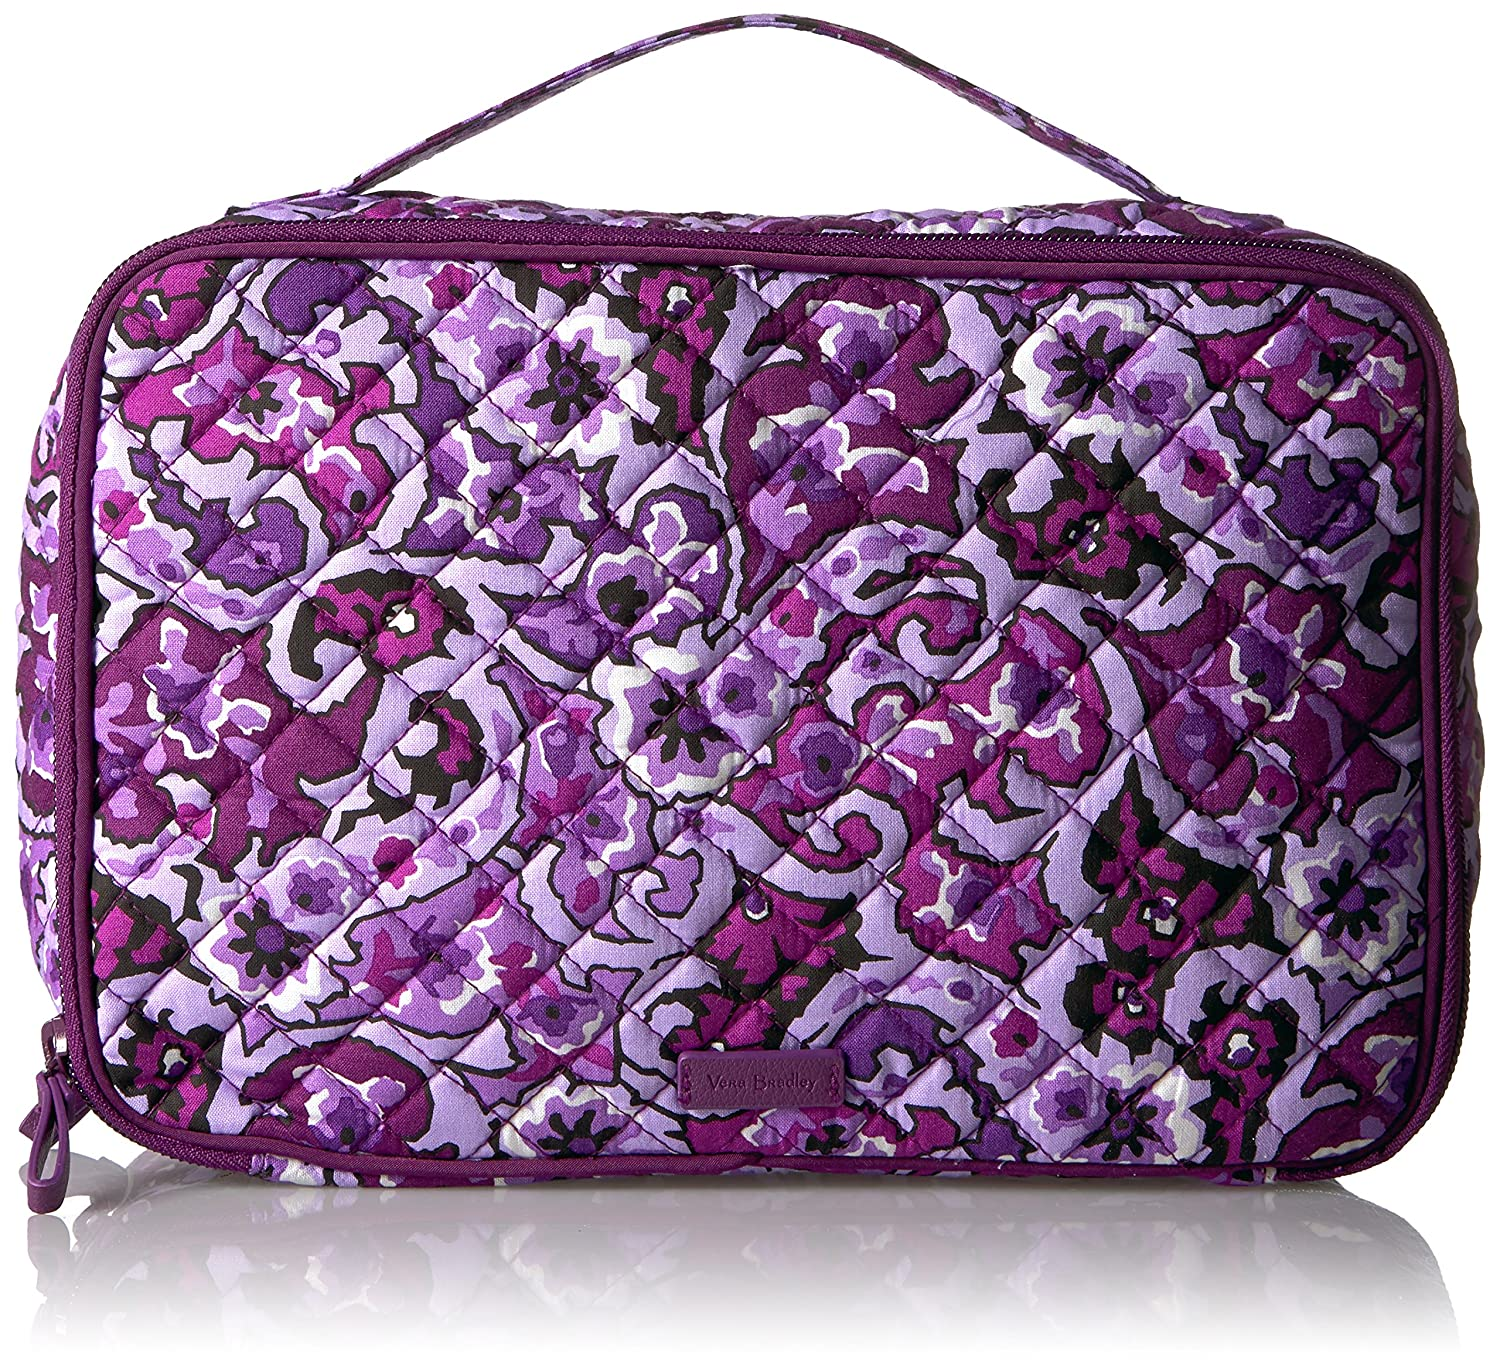 Vera Bradley Iconic Large Blush and Brush Case, Signature Cotton 22115